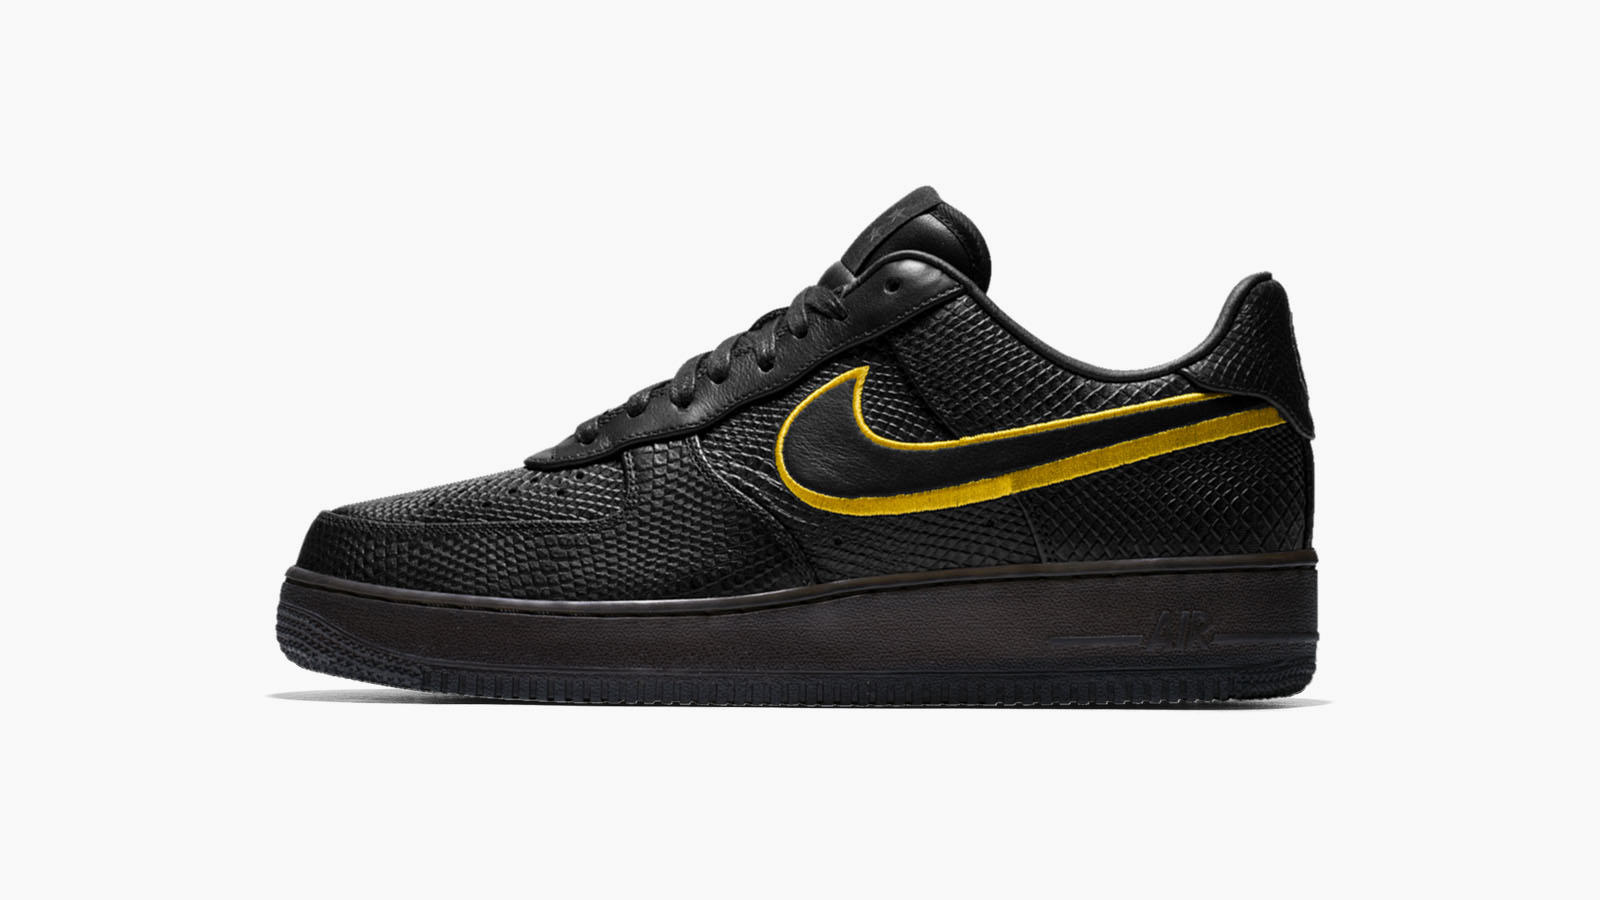 save off e5c04 70d7a Five Things to Know About the Commemorative Kobe Bryant Black Mamba Air  Force 1 10